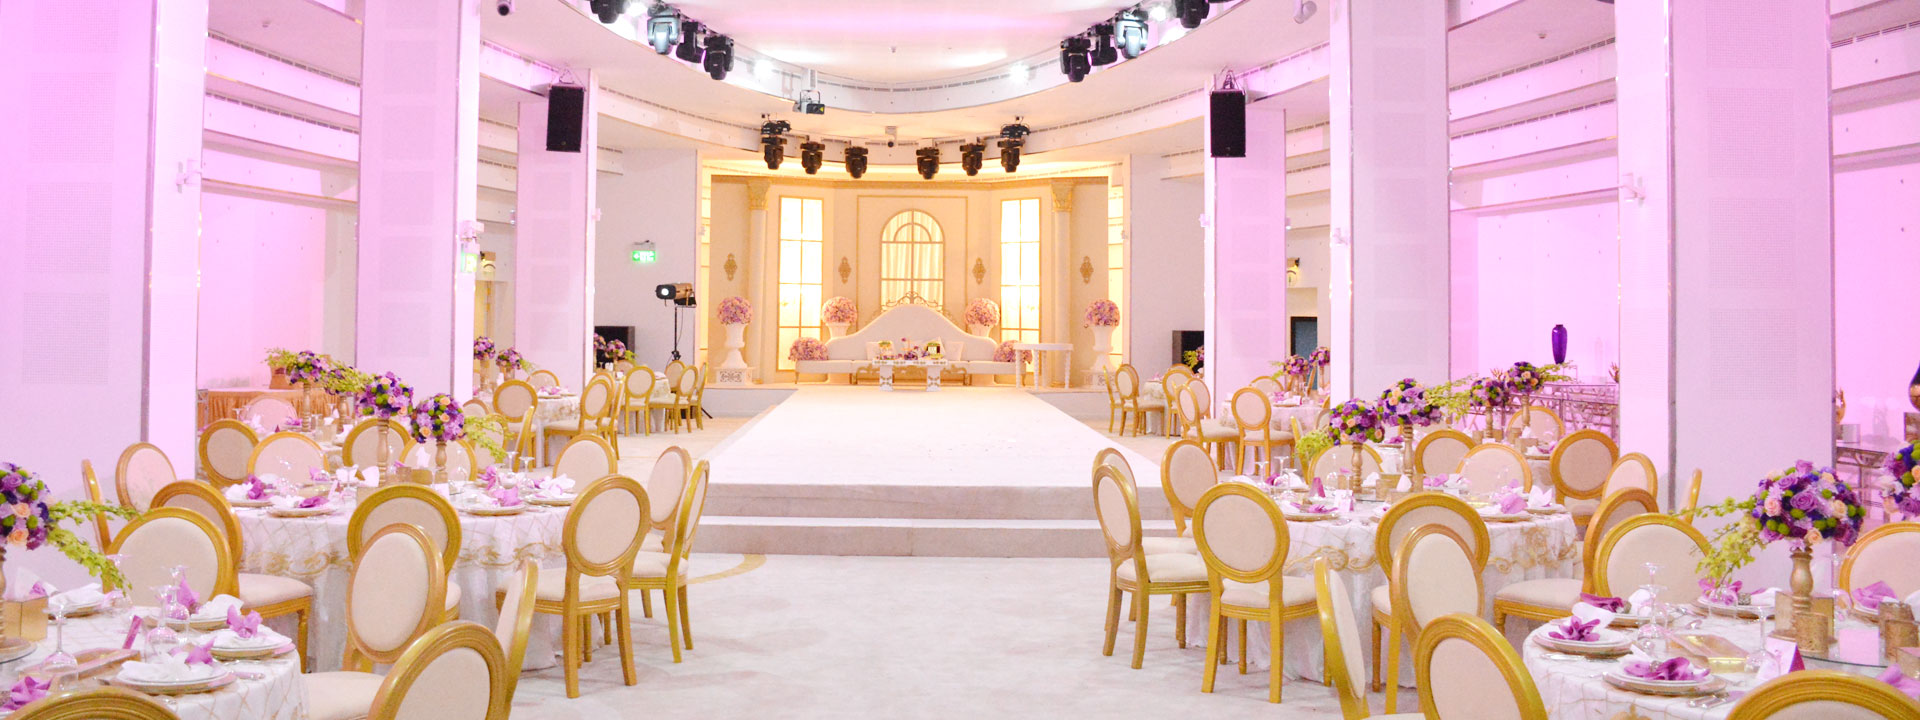 La Cigale Hotel - Wedding